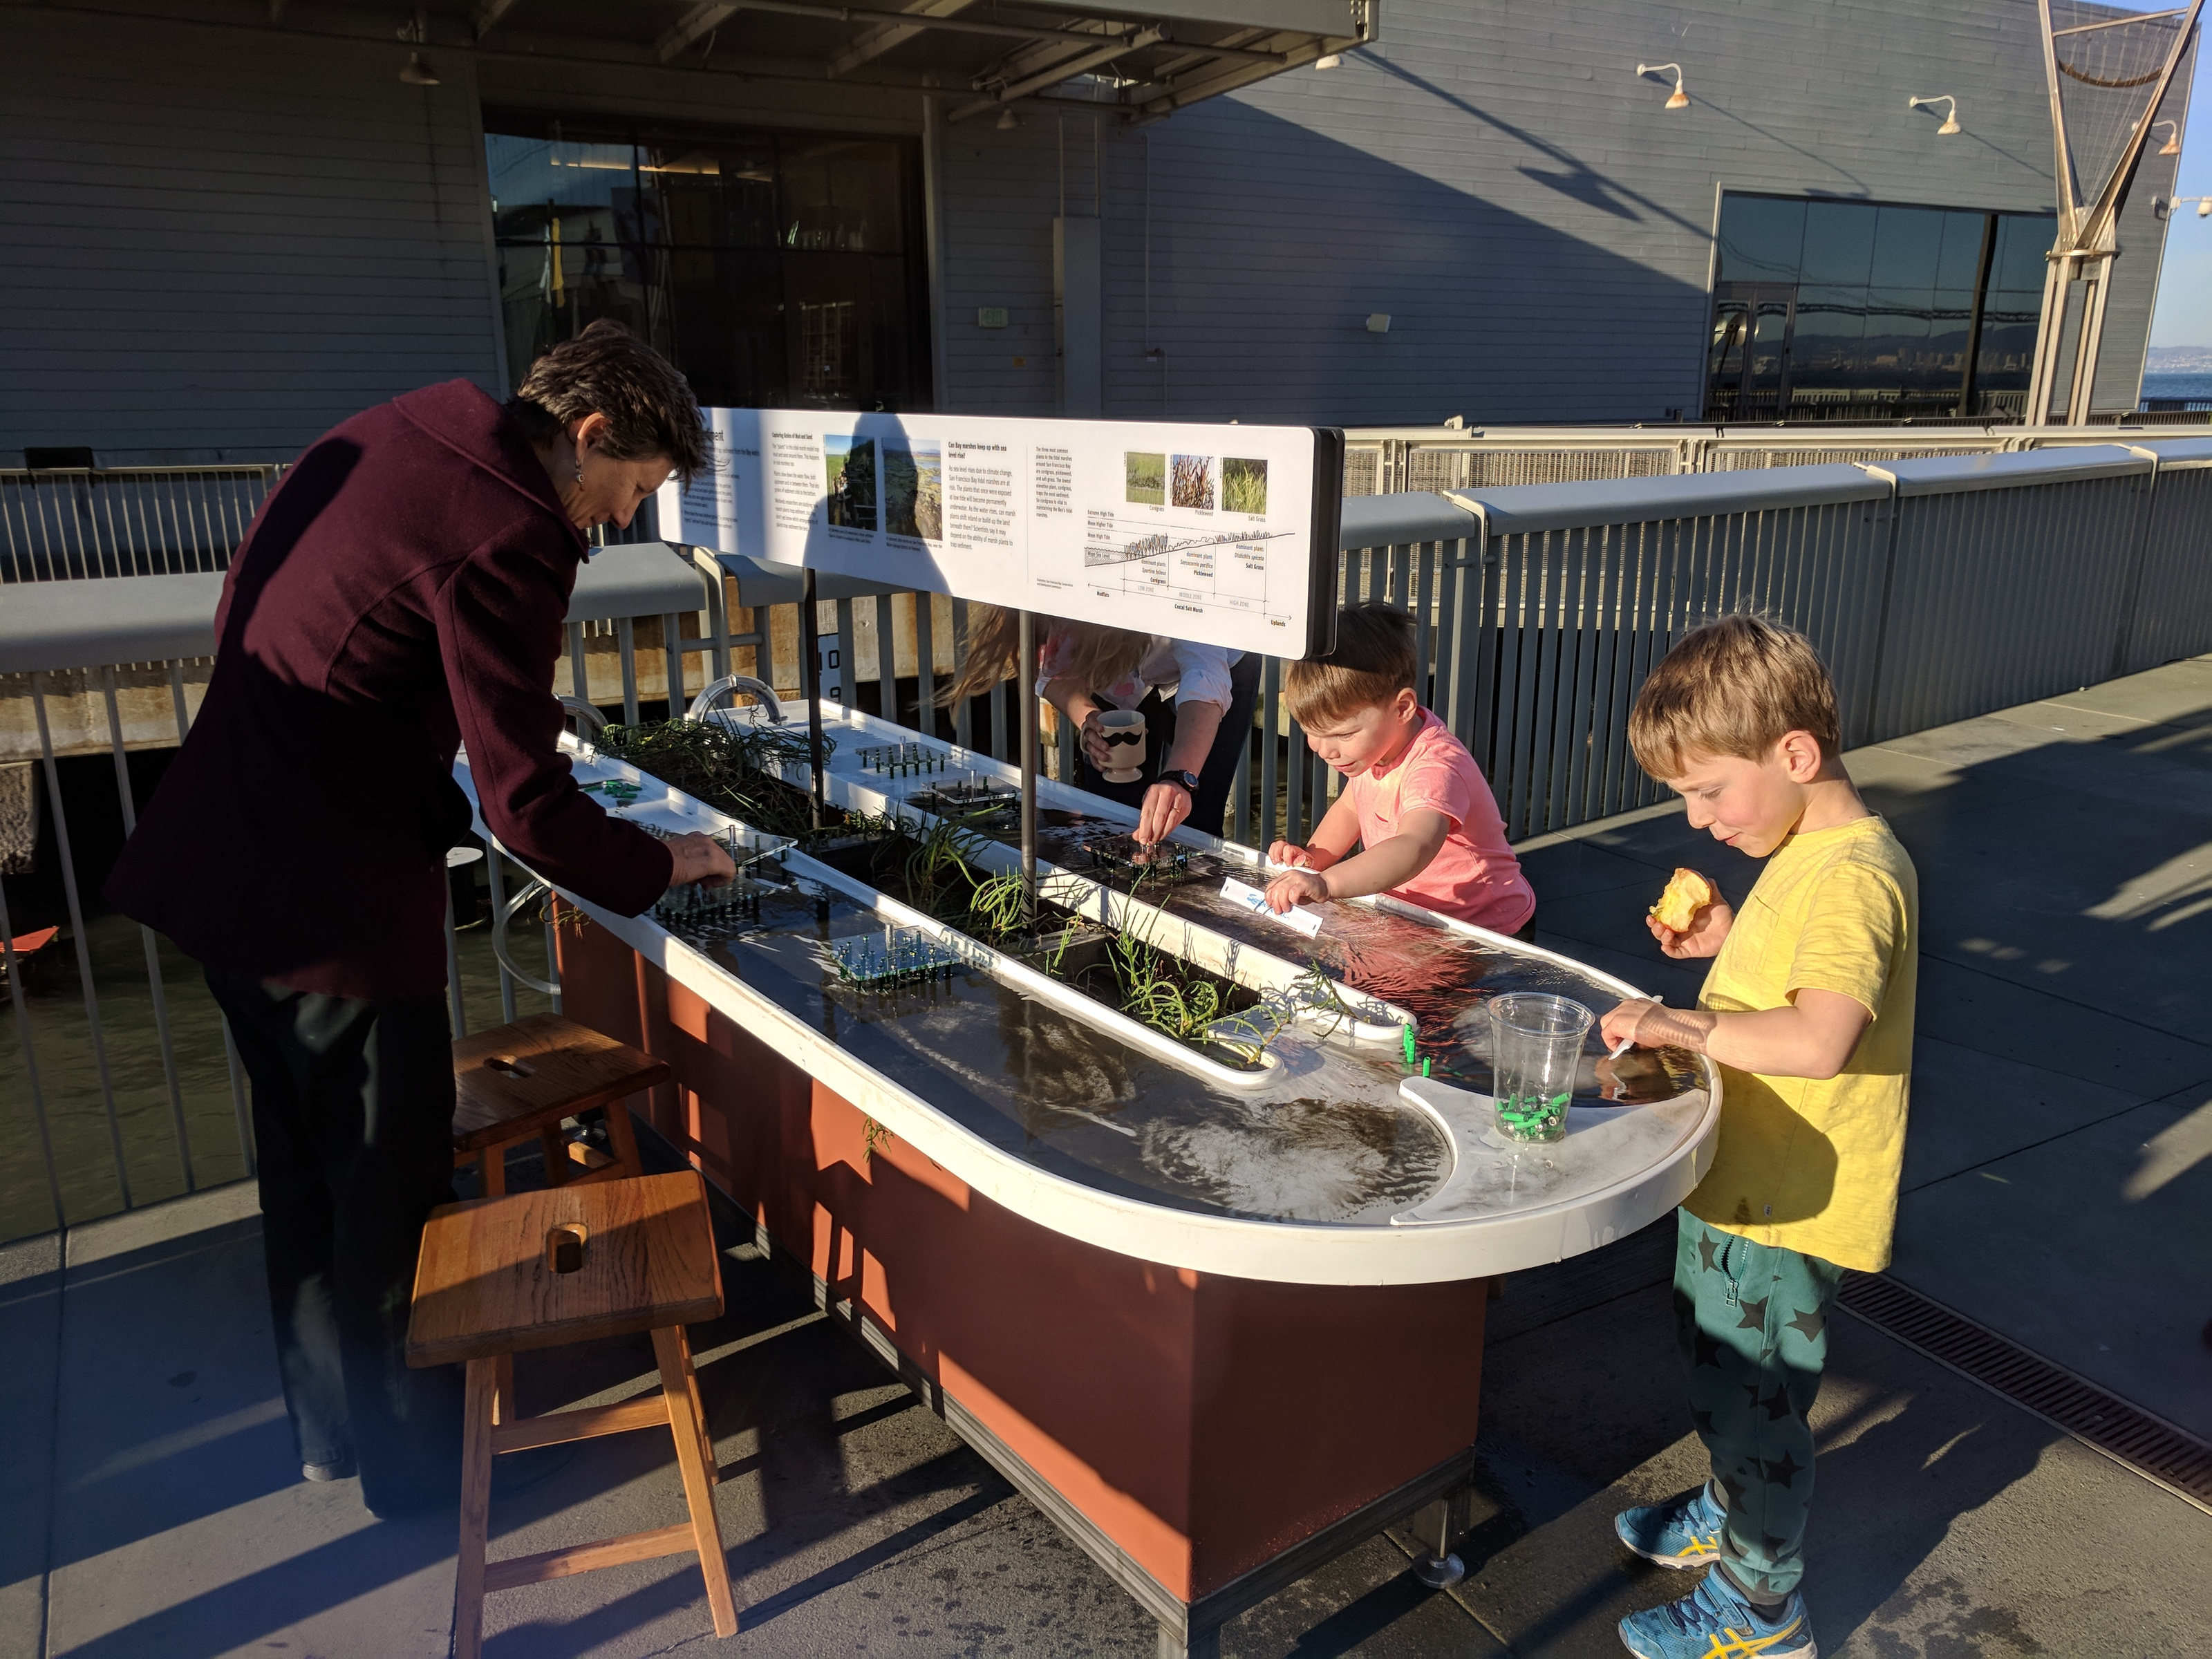 A woman and two boys interact with the Sediment Trapping exhibit, a flume flowing with Bay water and sediment.